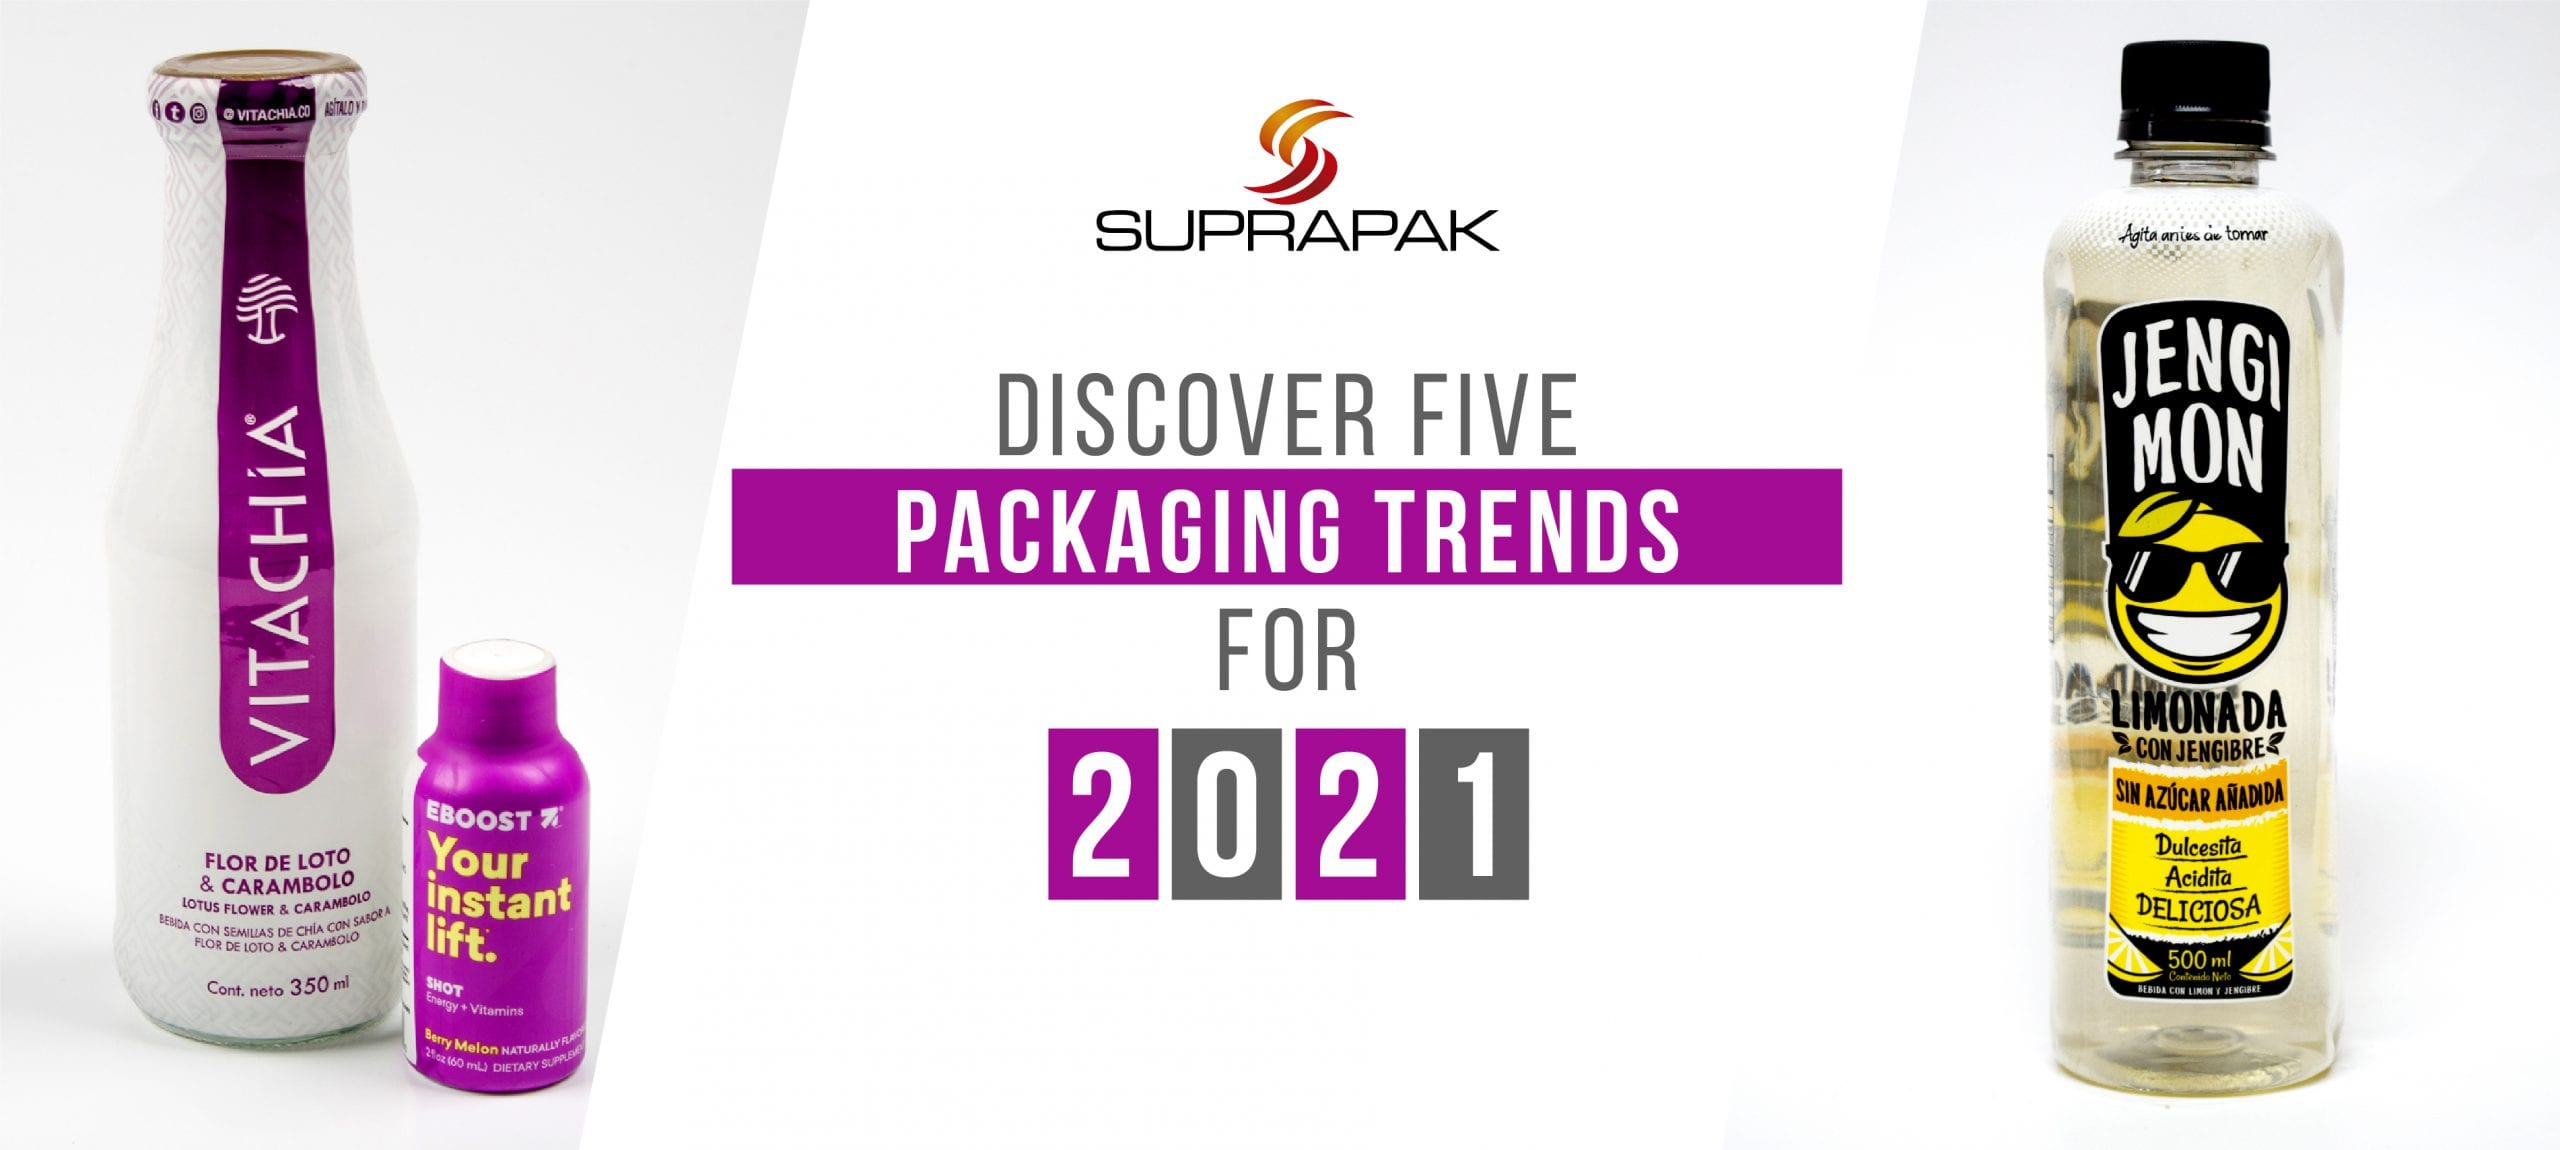 product packaging samples for 2021